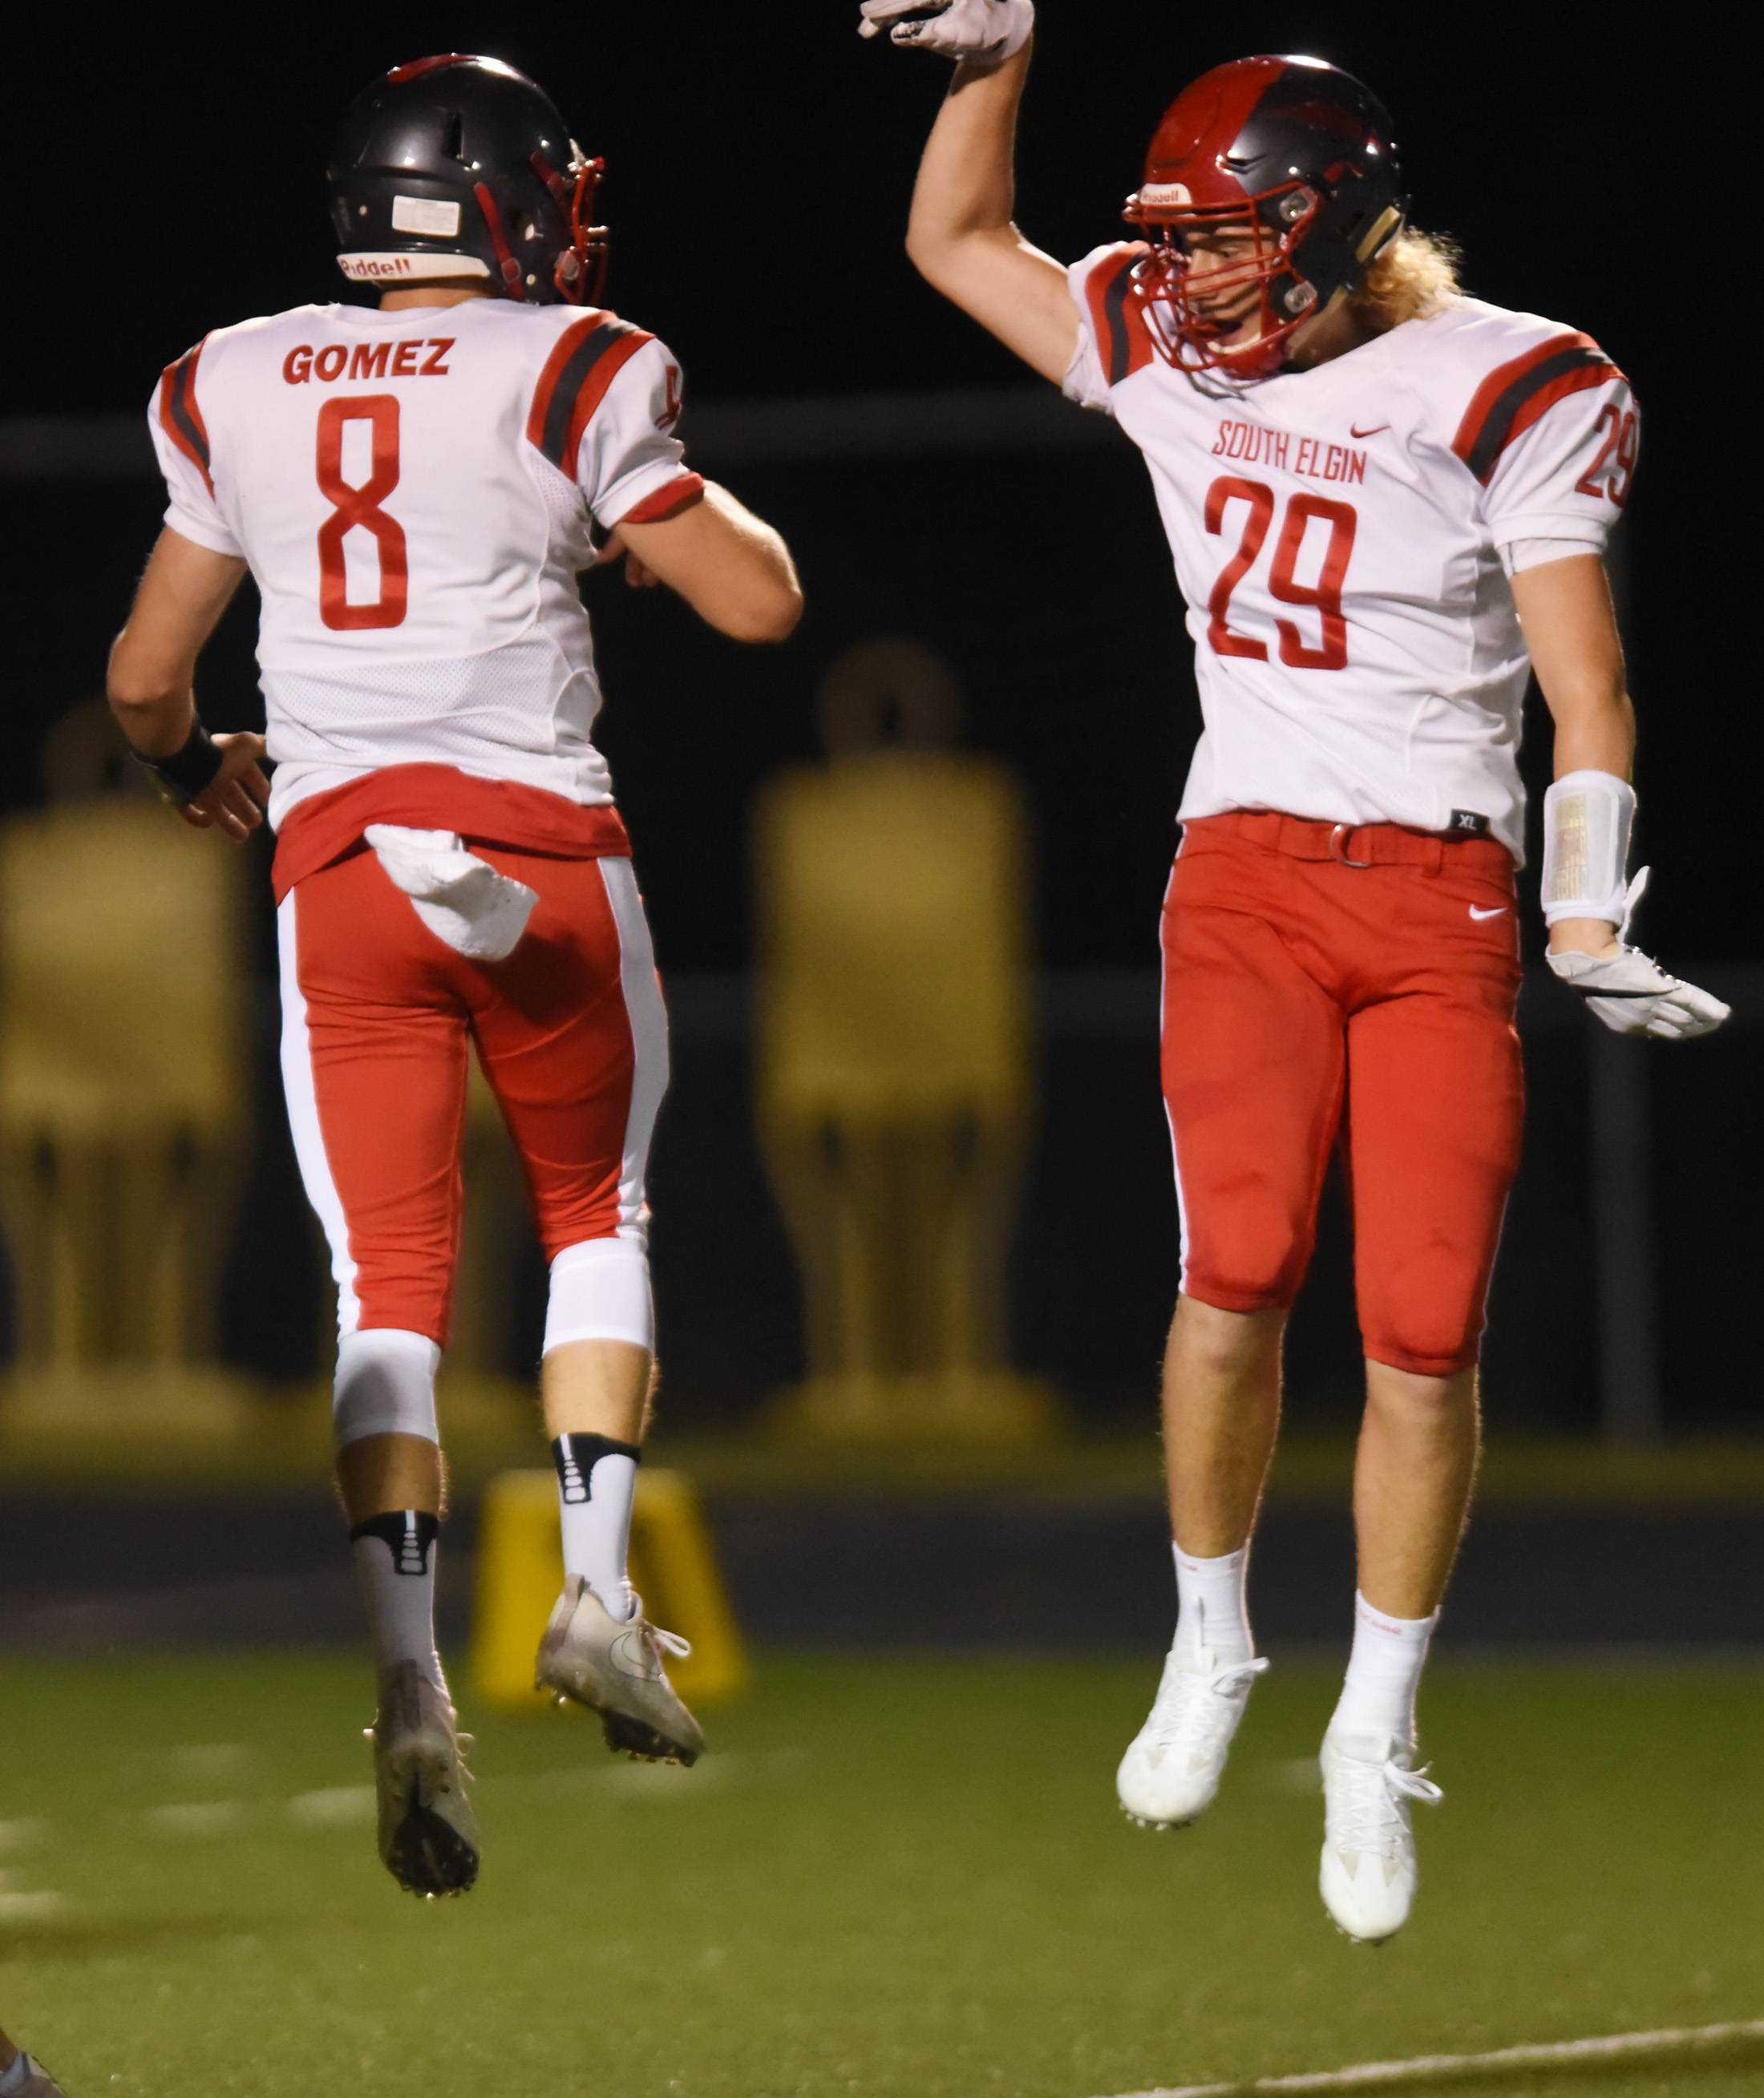 South Elgin quarterback Nate Gomez celebrates his first quarter touchdown run against Bartlett with Jake Donat Friday at Millennium Field in Streamwood.